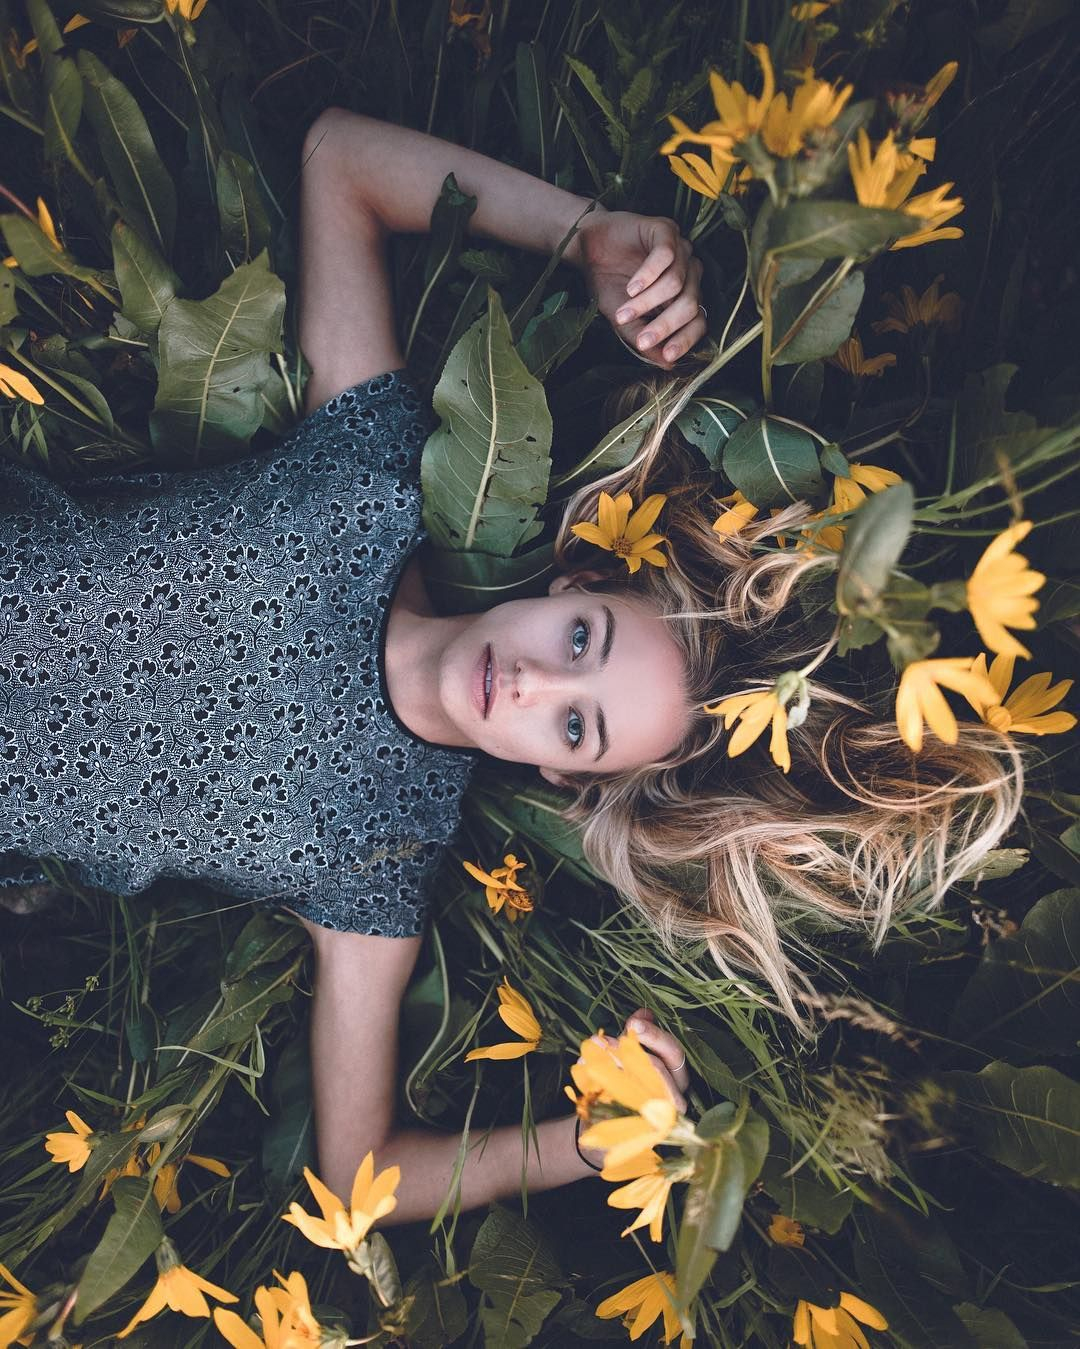 Zach Allia is a talented self taught photographer, traveler and software developer, who spend his twenties behind a computer in Silicon Valley.jpg